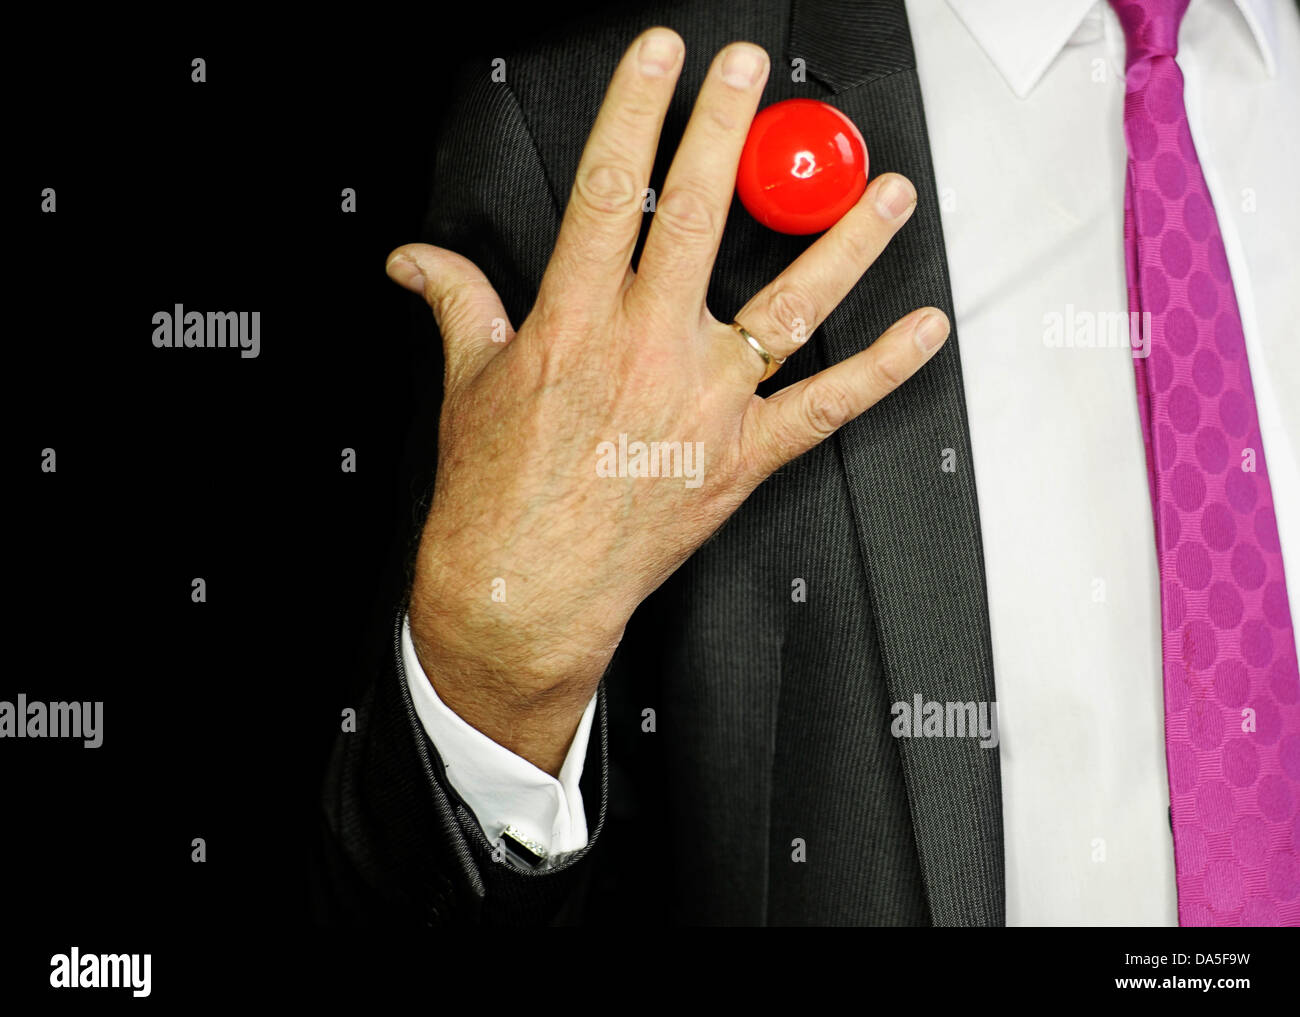 close up shot of magic trick against a black background - Stock Image